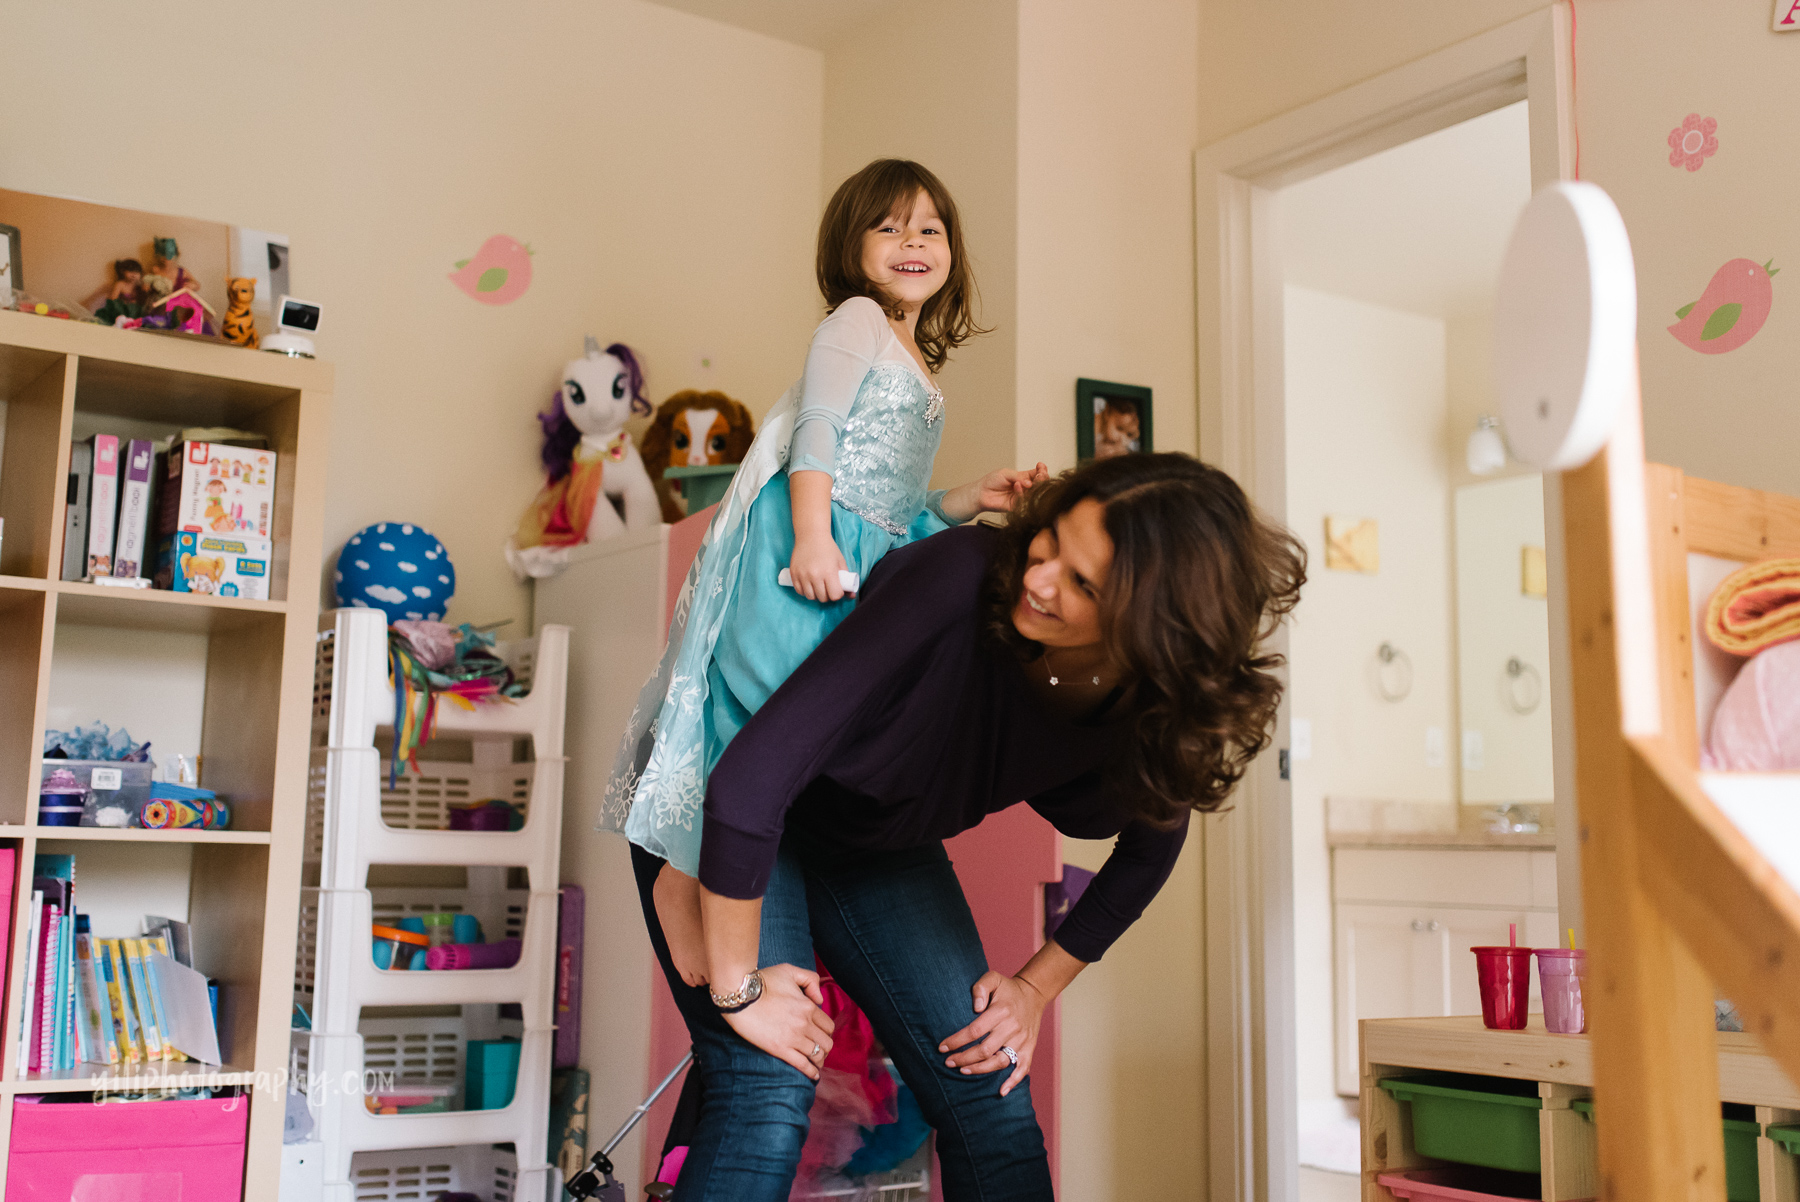 Seattle_Family_Photographer_at_home-15